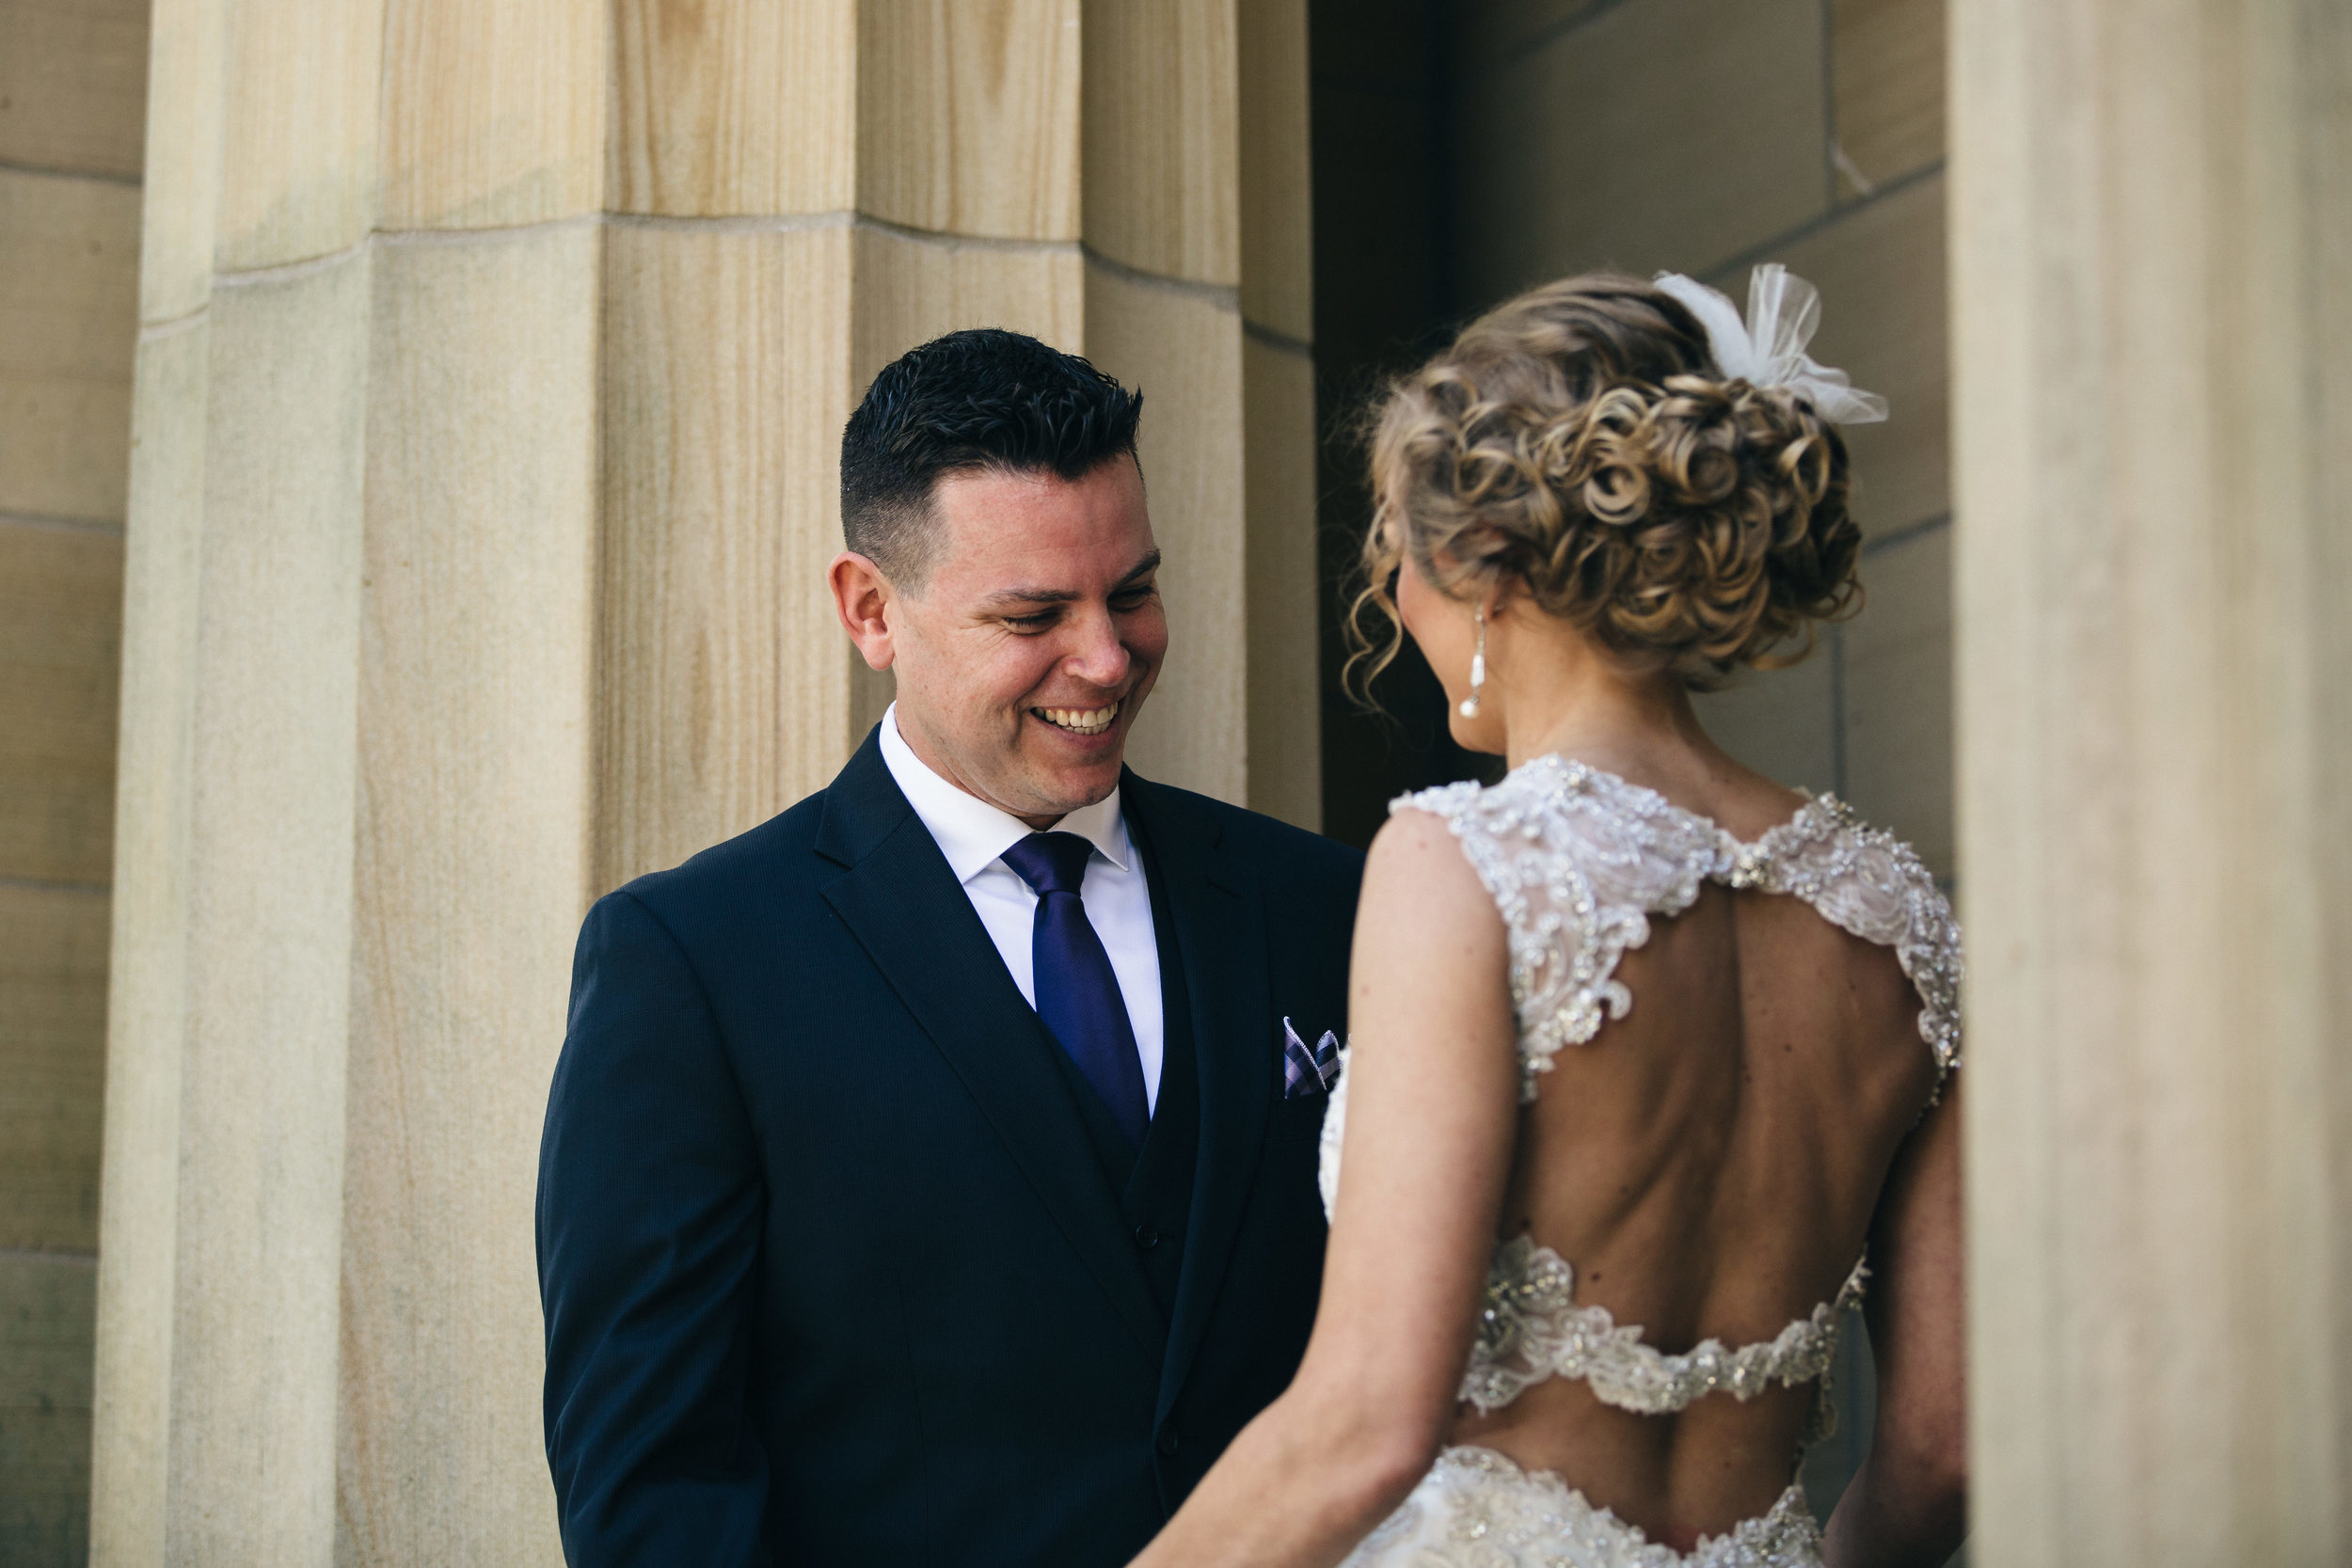 Groom sees bride for first time in Maggie Sottero Design wedding dress.